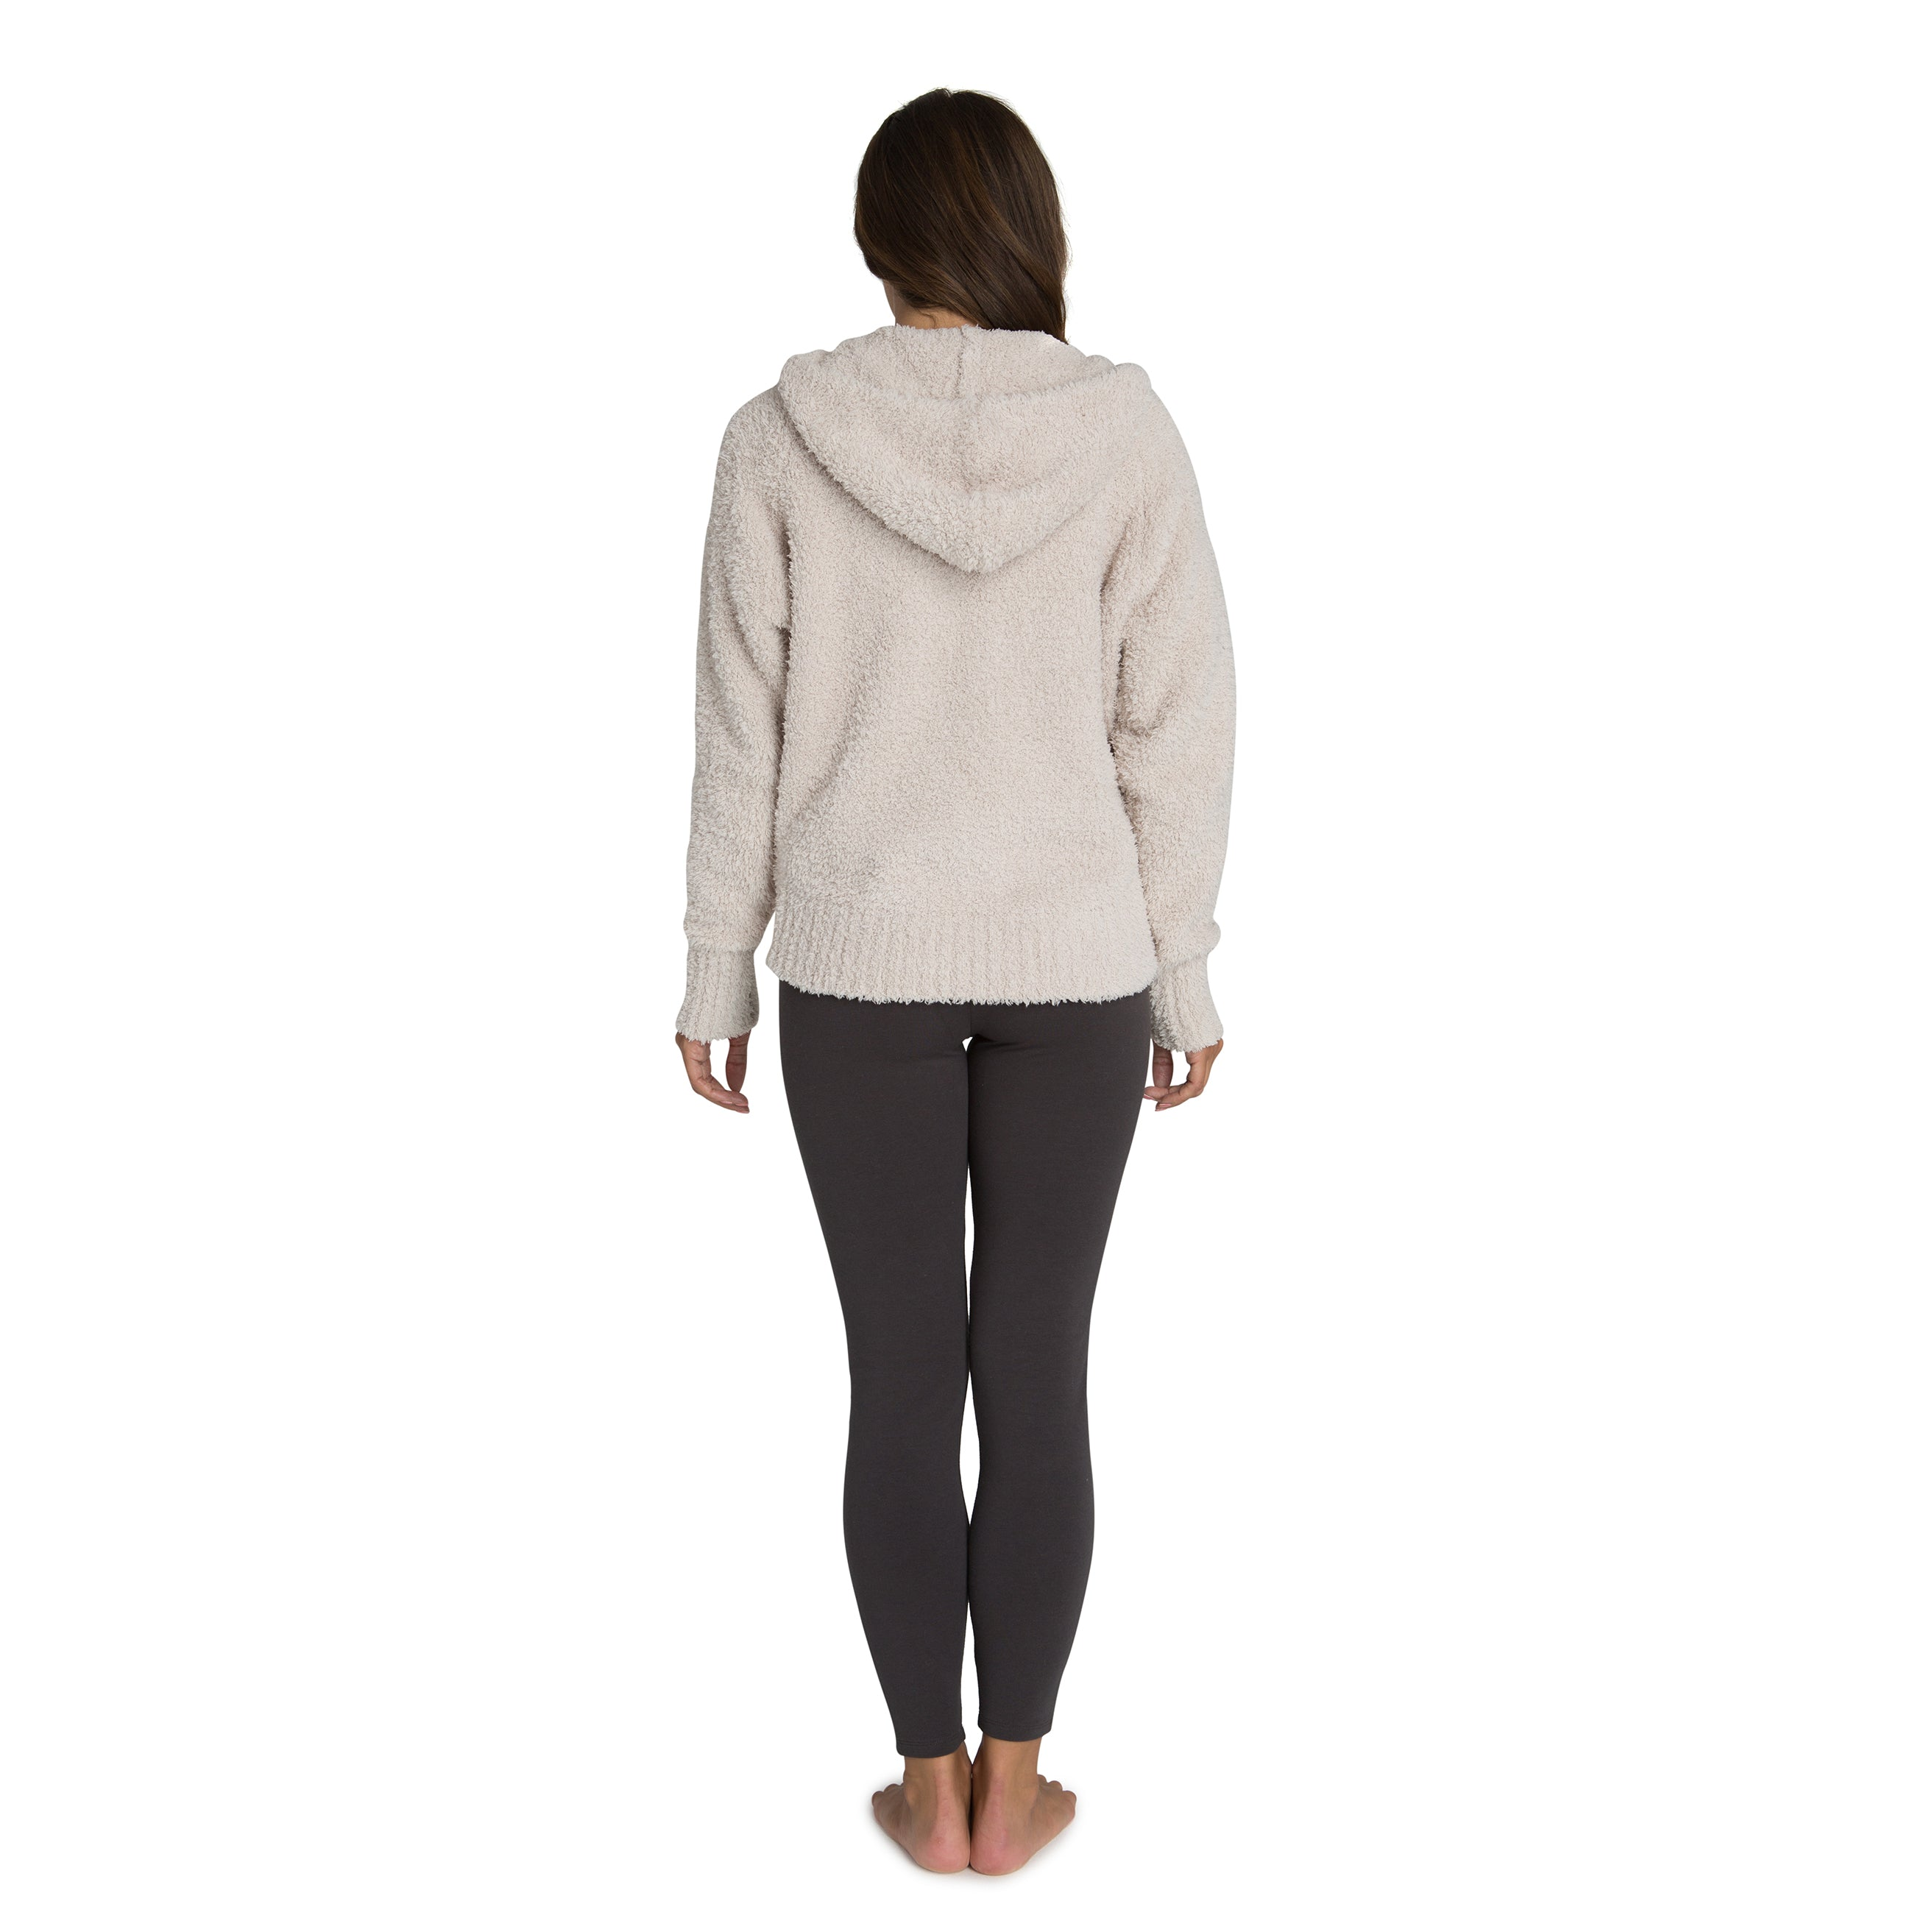 Cozychic Relaxed Zip-Up Hoodie